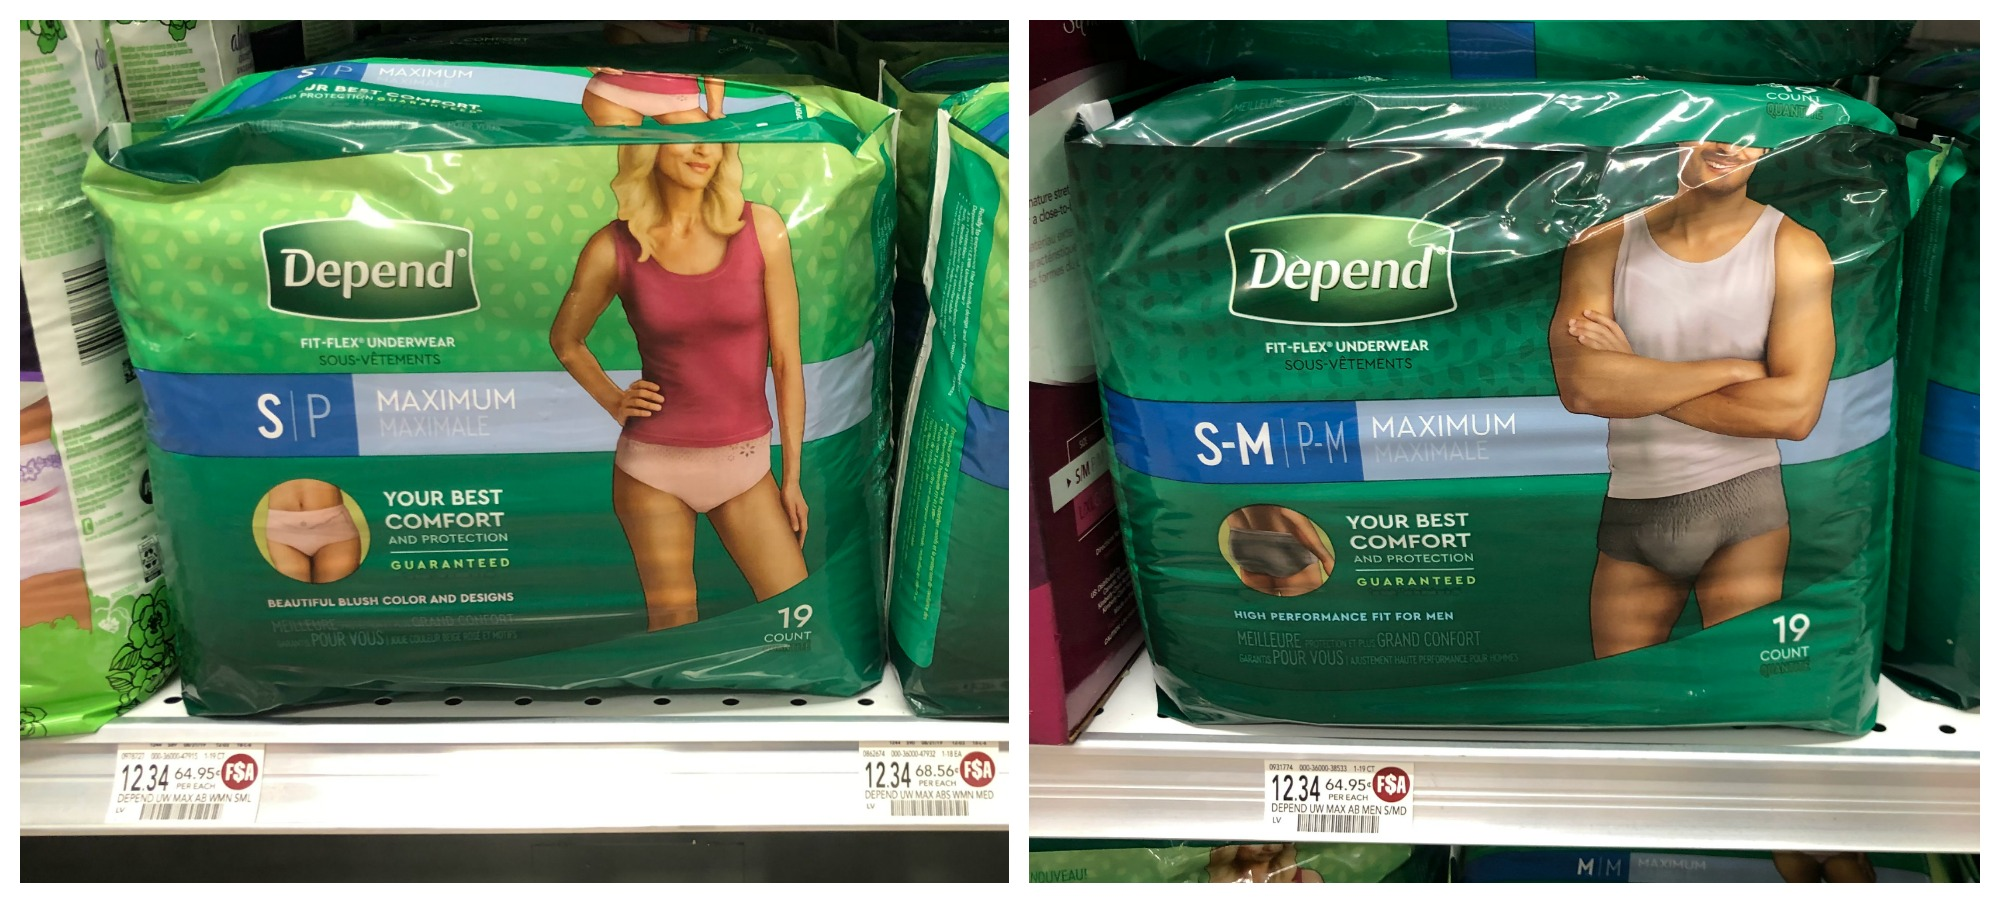 Big Savings On U by Kotex, Poise, & Depend Products At Publix - Time To Stock Up! on I Heart Publix 2